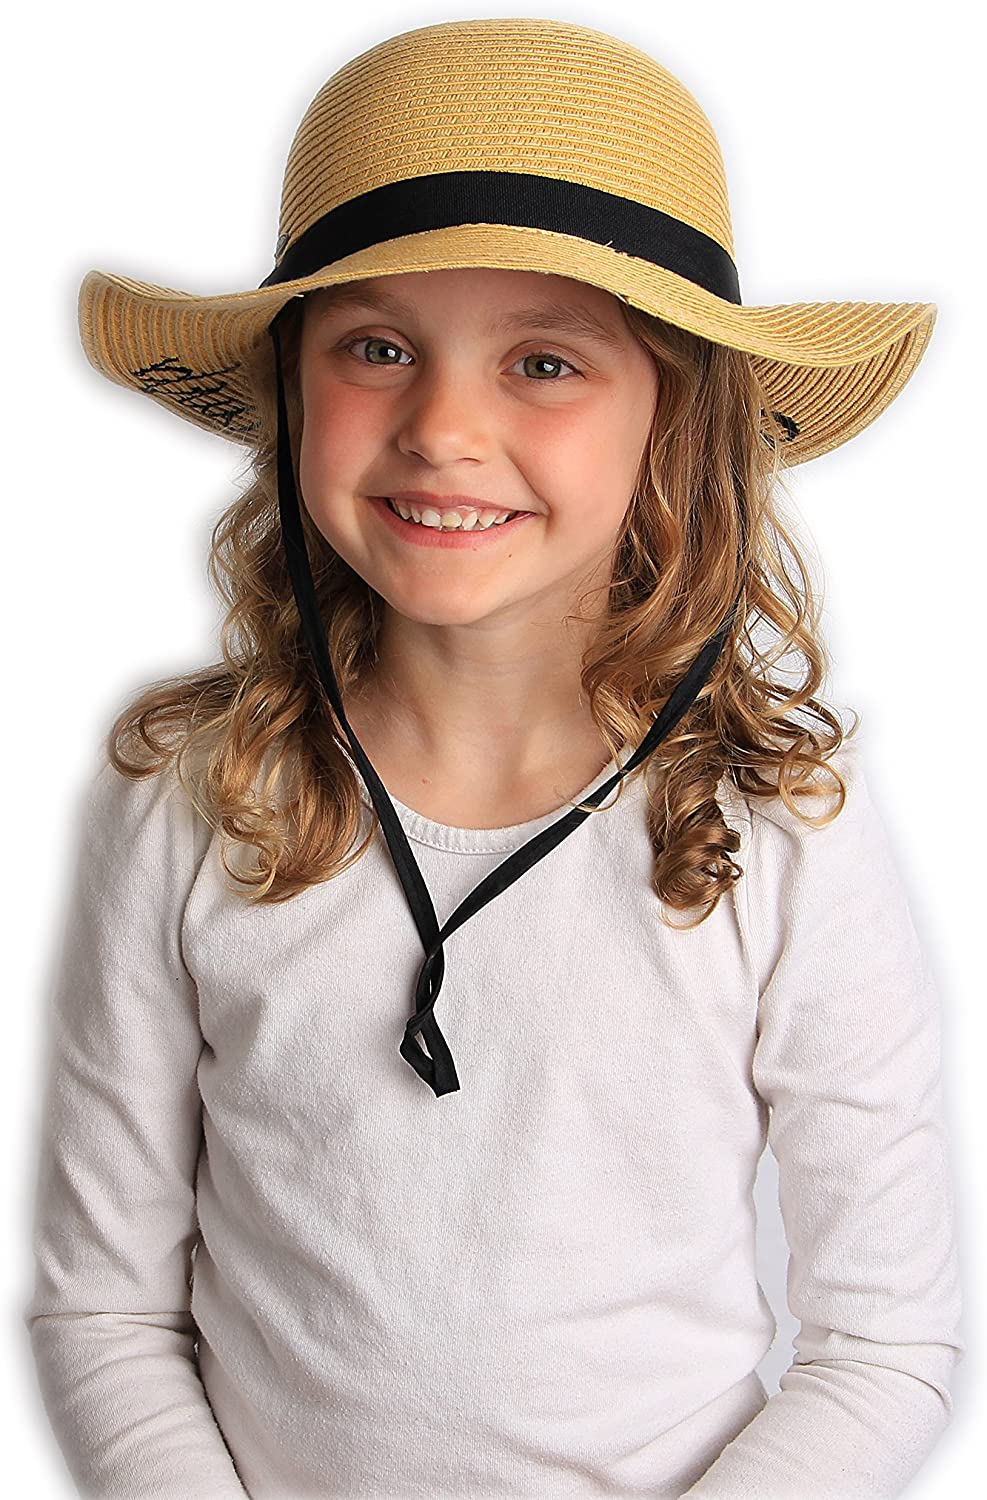 H-3017-BB06 Girls Embroidered Sun Hat Natural Beach Baby